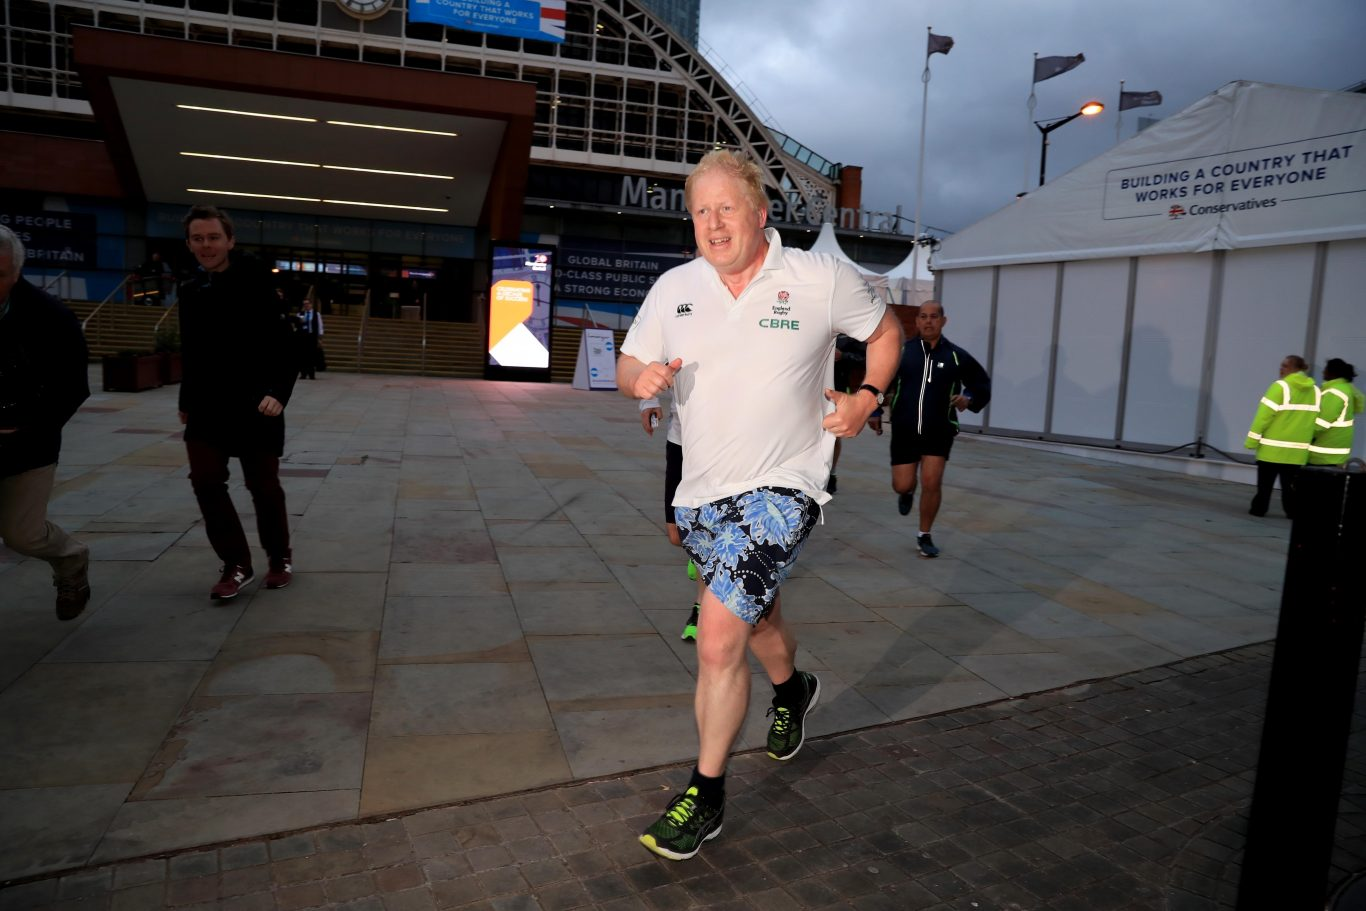 Foreign Secretary Boris Johnson returns to his hotel after an early morning run during the Conservative Party Conference in Manchester (Peter Byrne/PA)